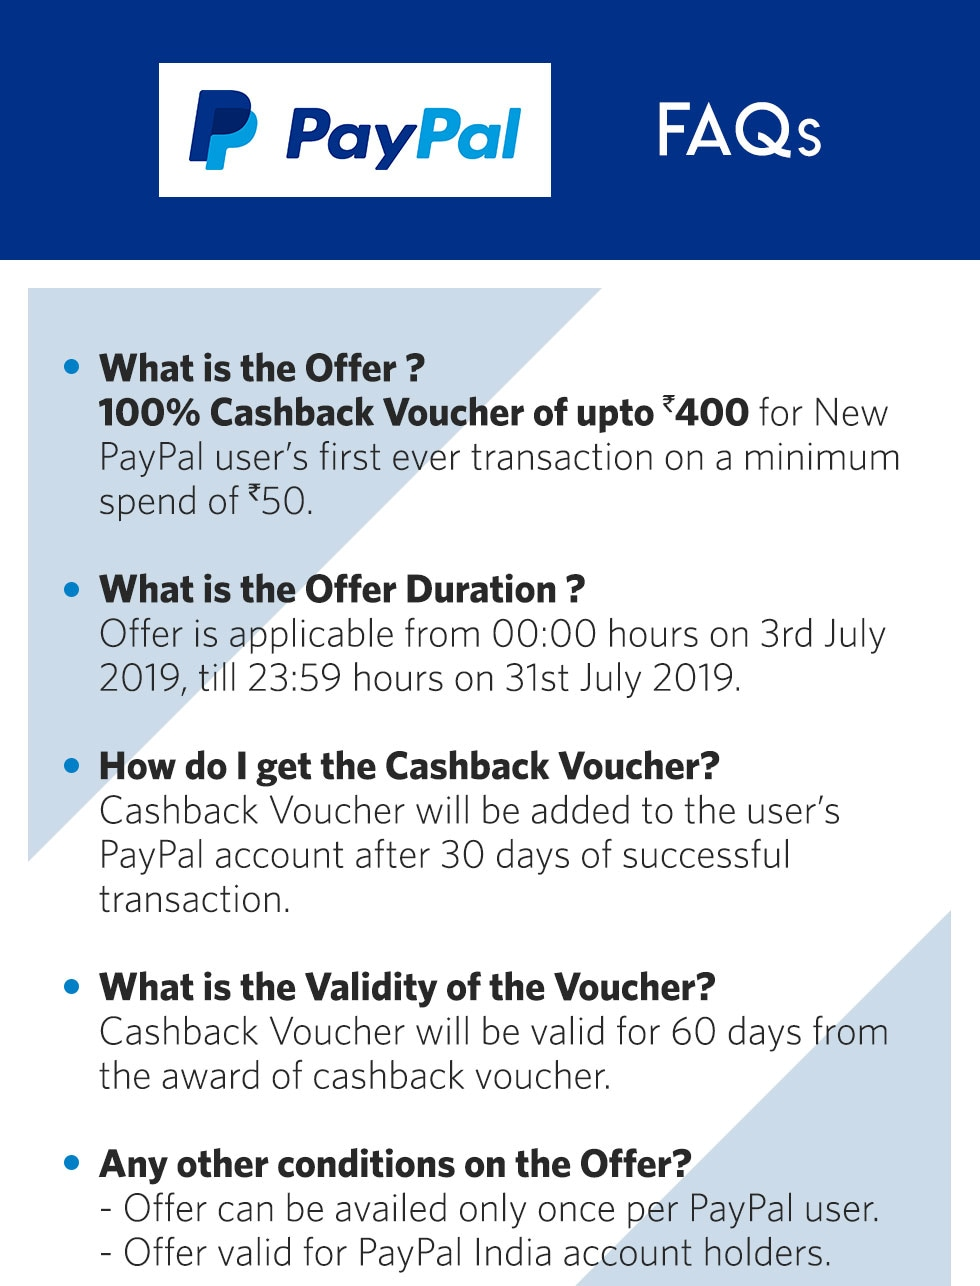 Myntra Paypal Offer : Get 100% Cashback | Pay via Paypal